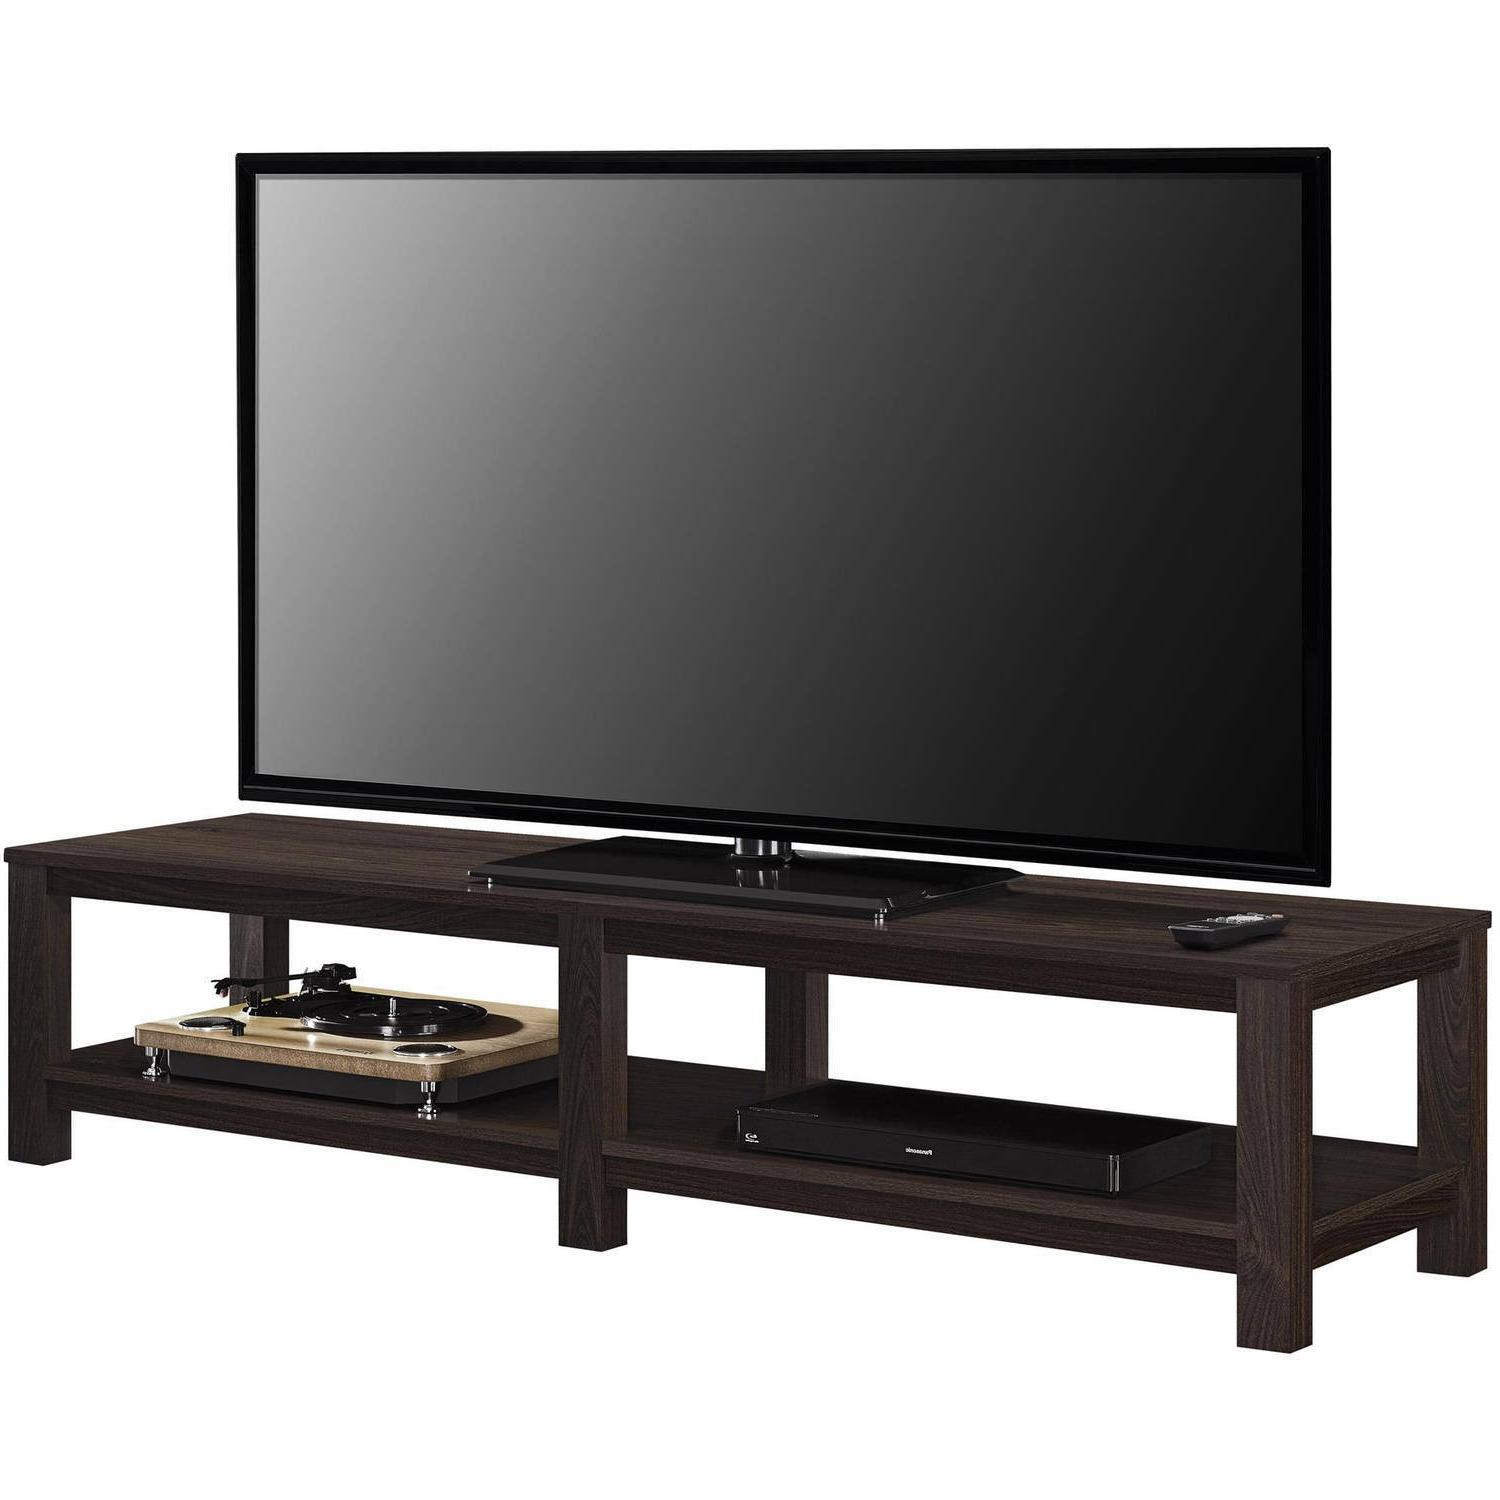 Mainstays Parsons Stand TVs to Multiple